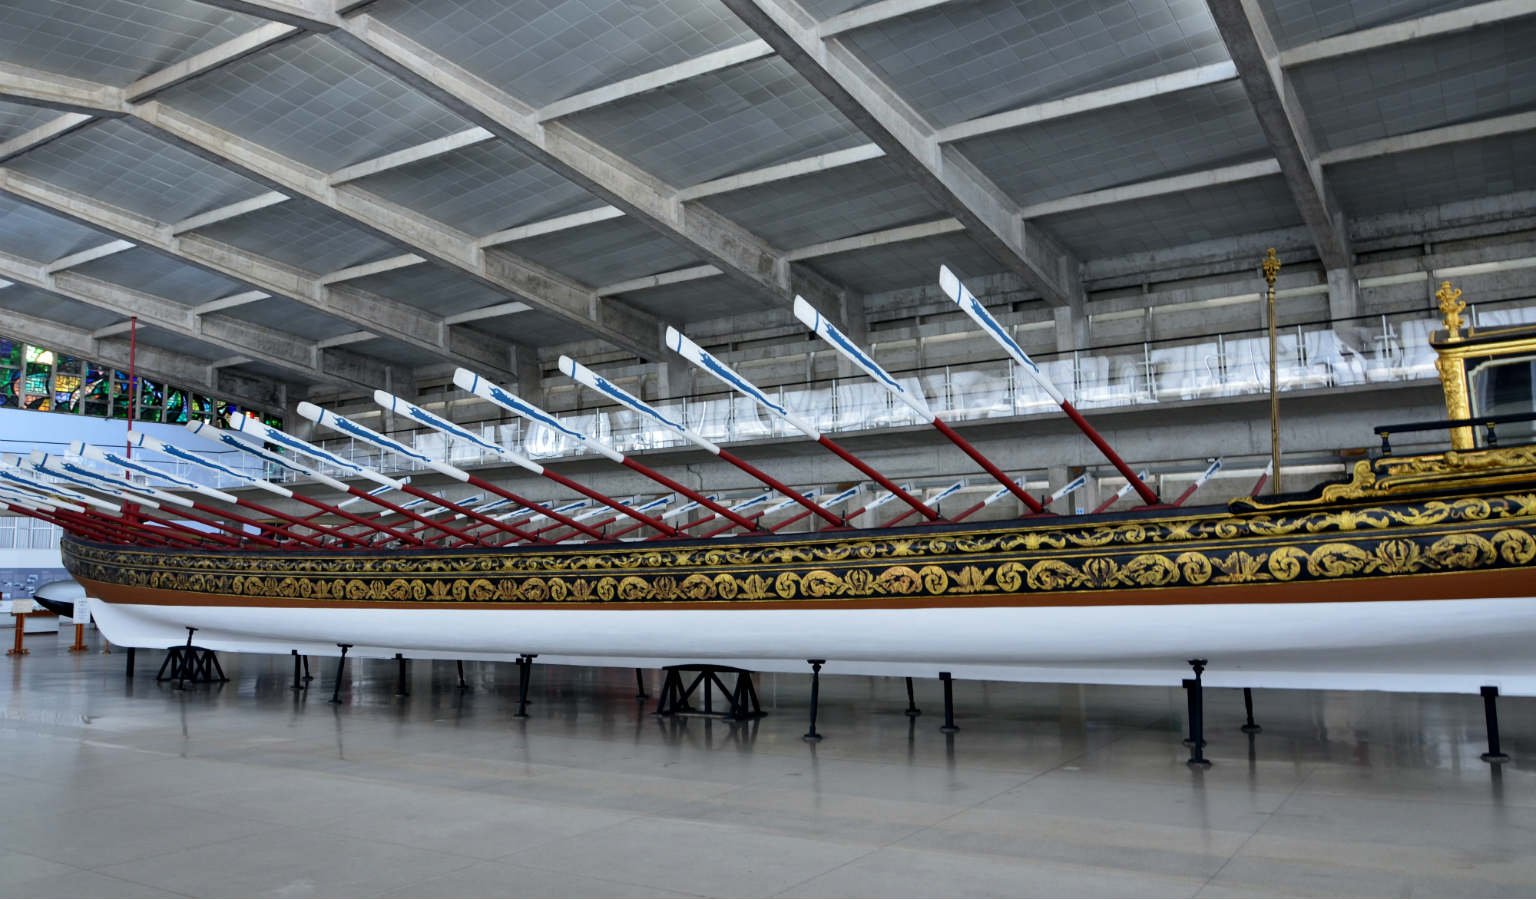 The enormous length of a royal barge in the National Museum of Royal Barges in Bangkok